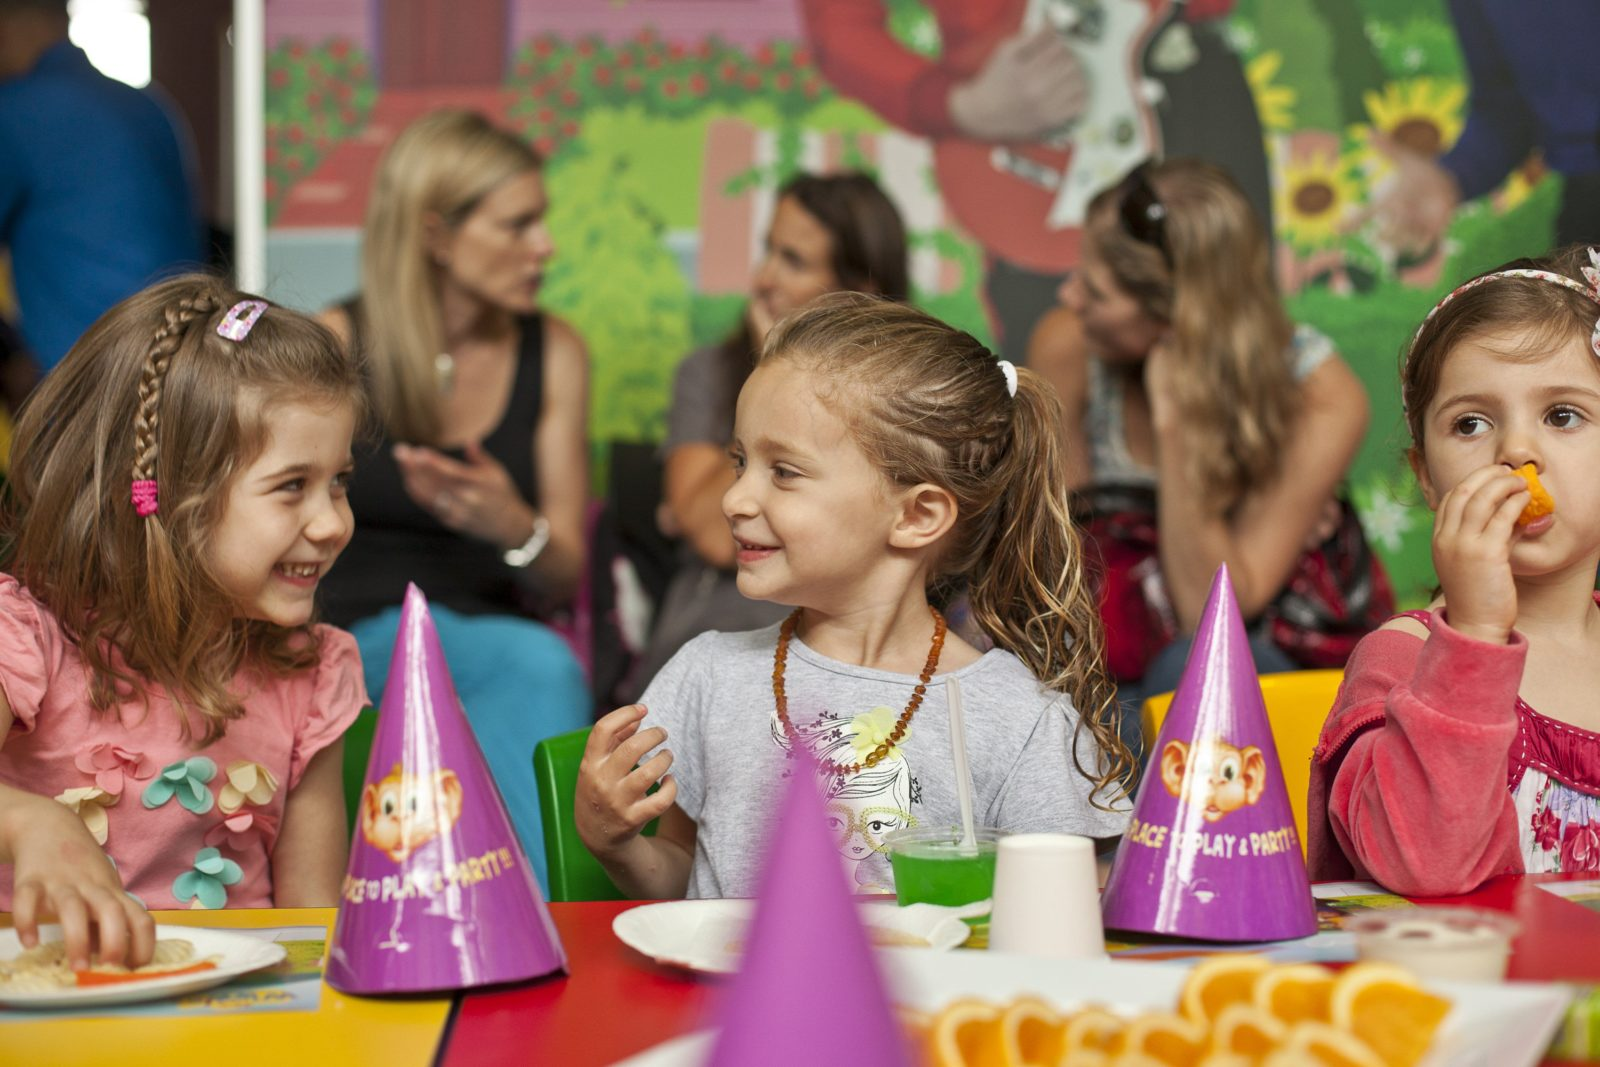 Kids enjoying a party at Monkey Mania